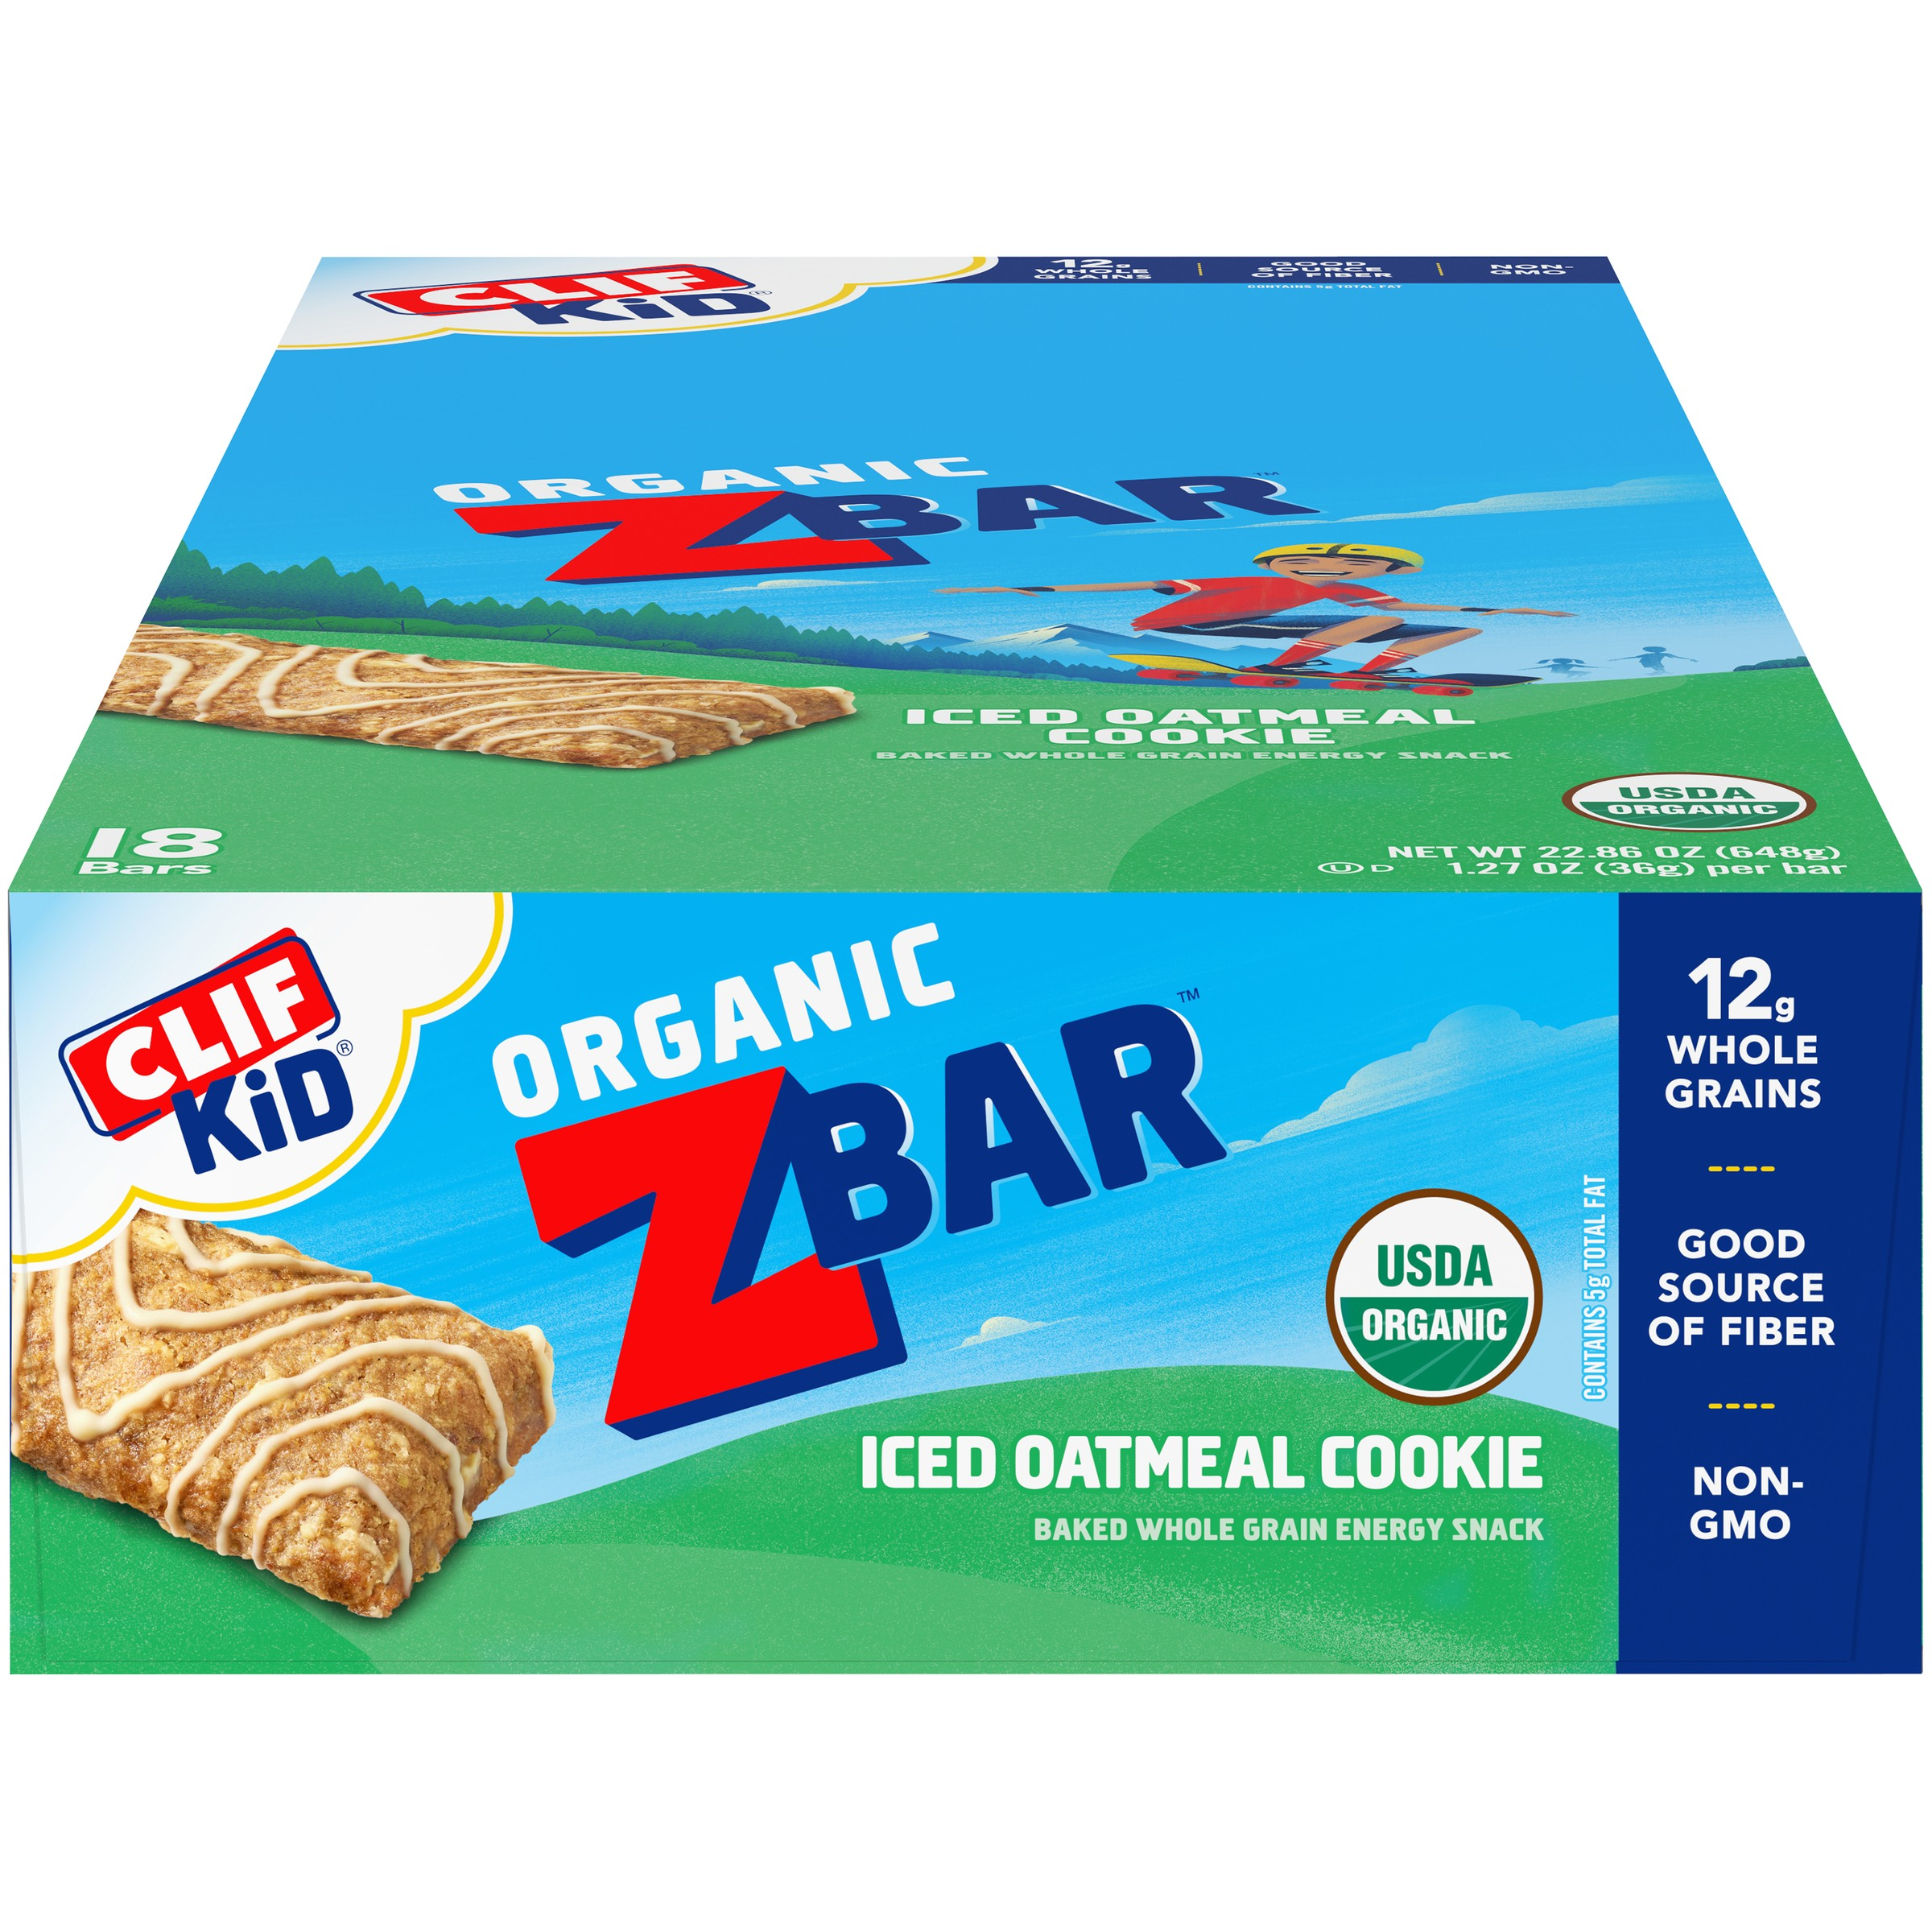 Clif Kid® Organic ZBar™ Iced Oatmeal Cookie Baked Whole Grain Energy Snack 18-1.27 oz. Bars